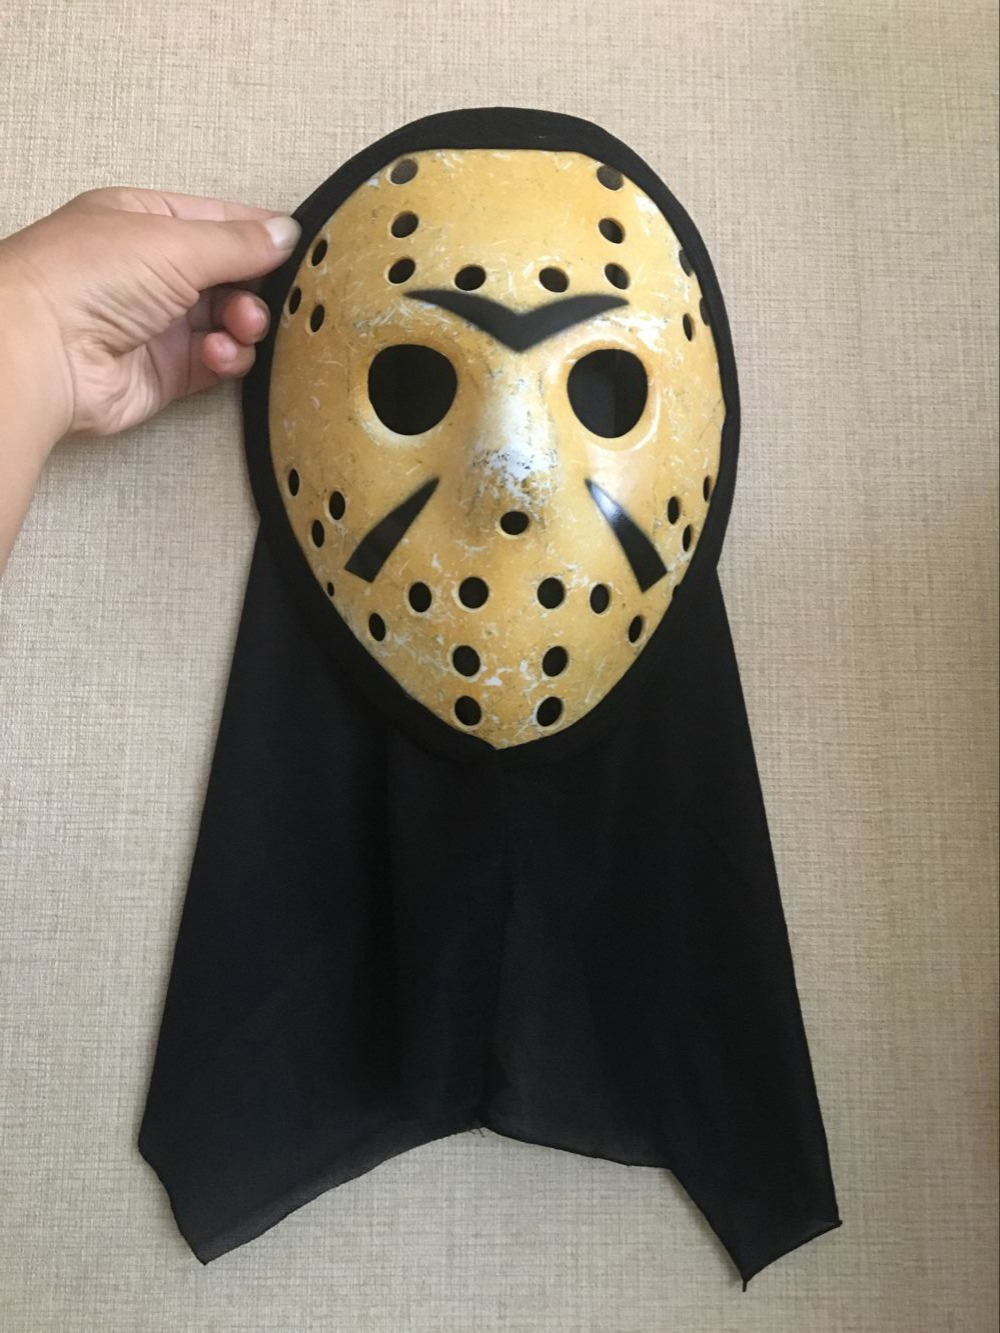 Compare Prices on Old Hockey Mask- Online Shopping/Buy Low Price ...